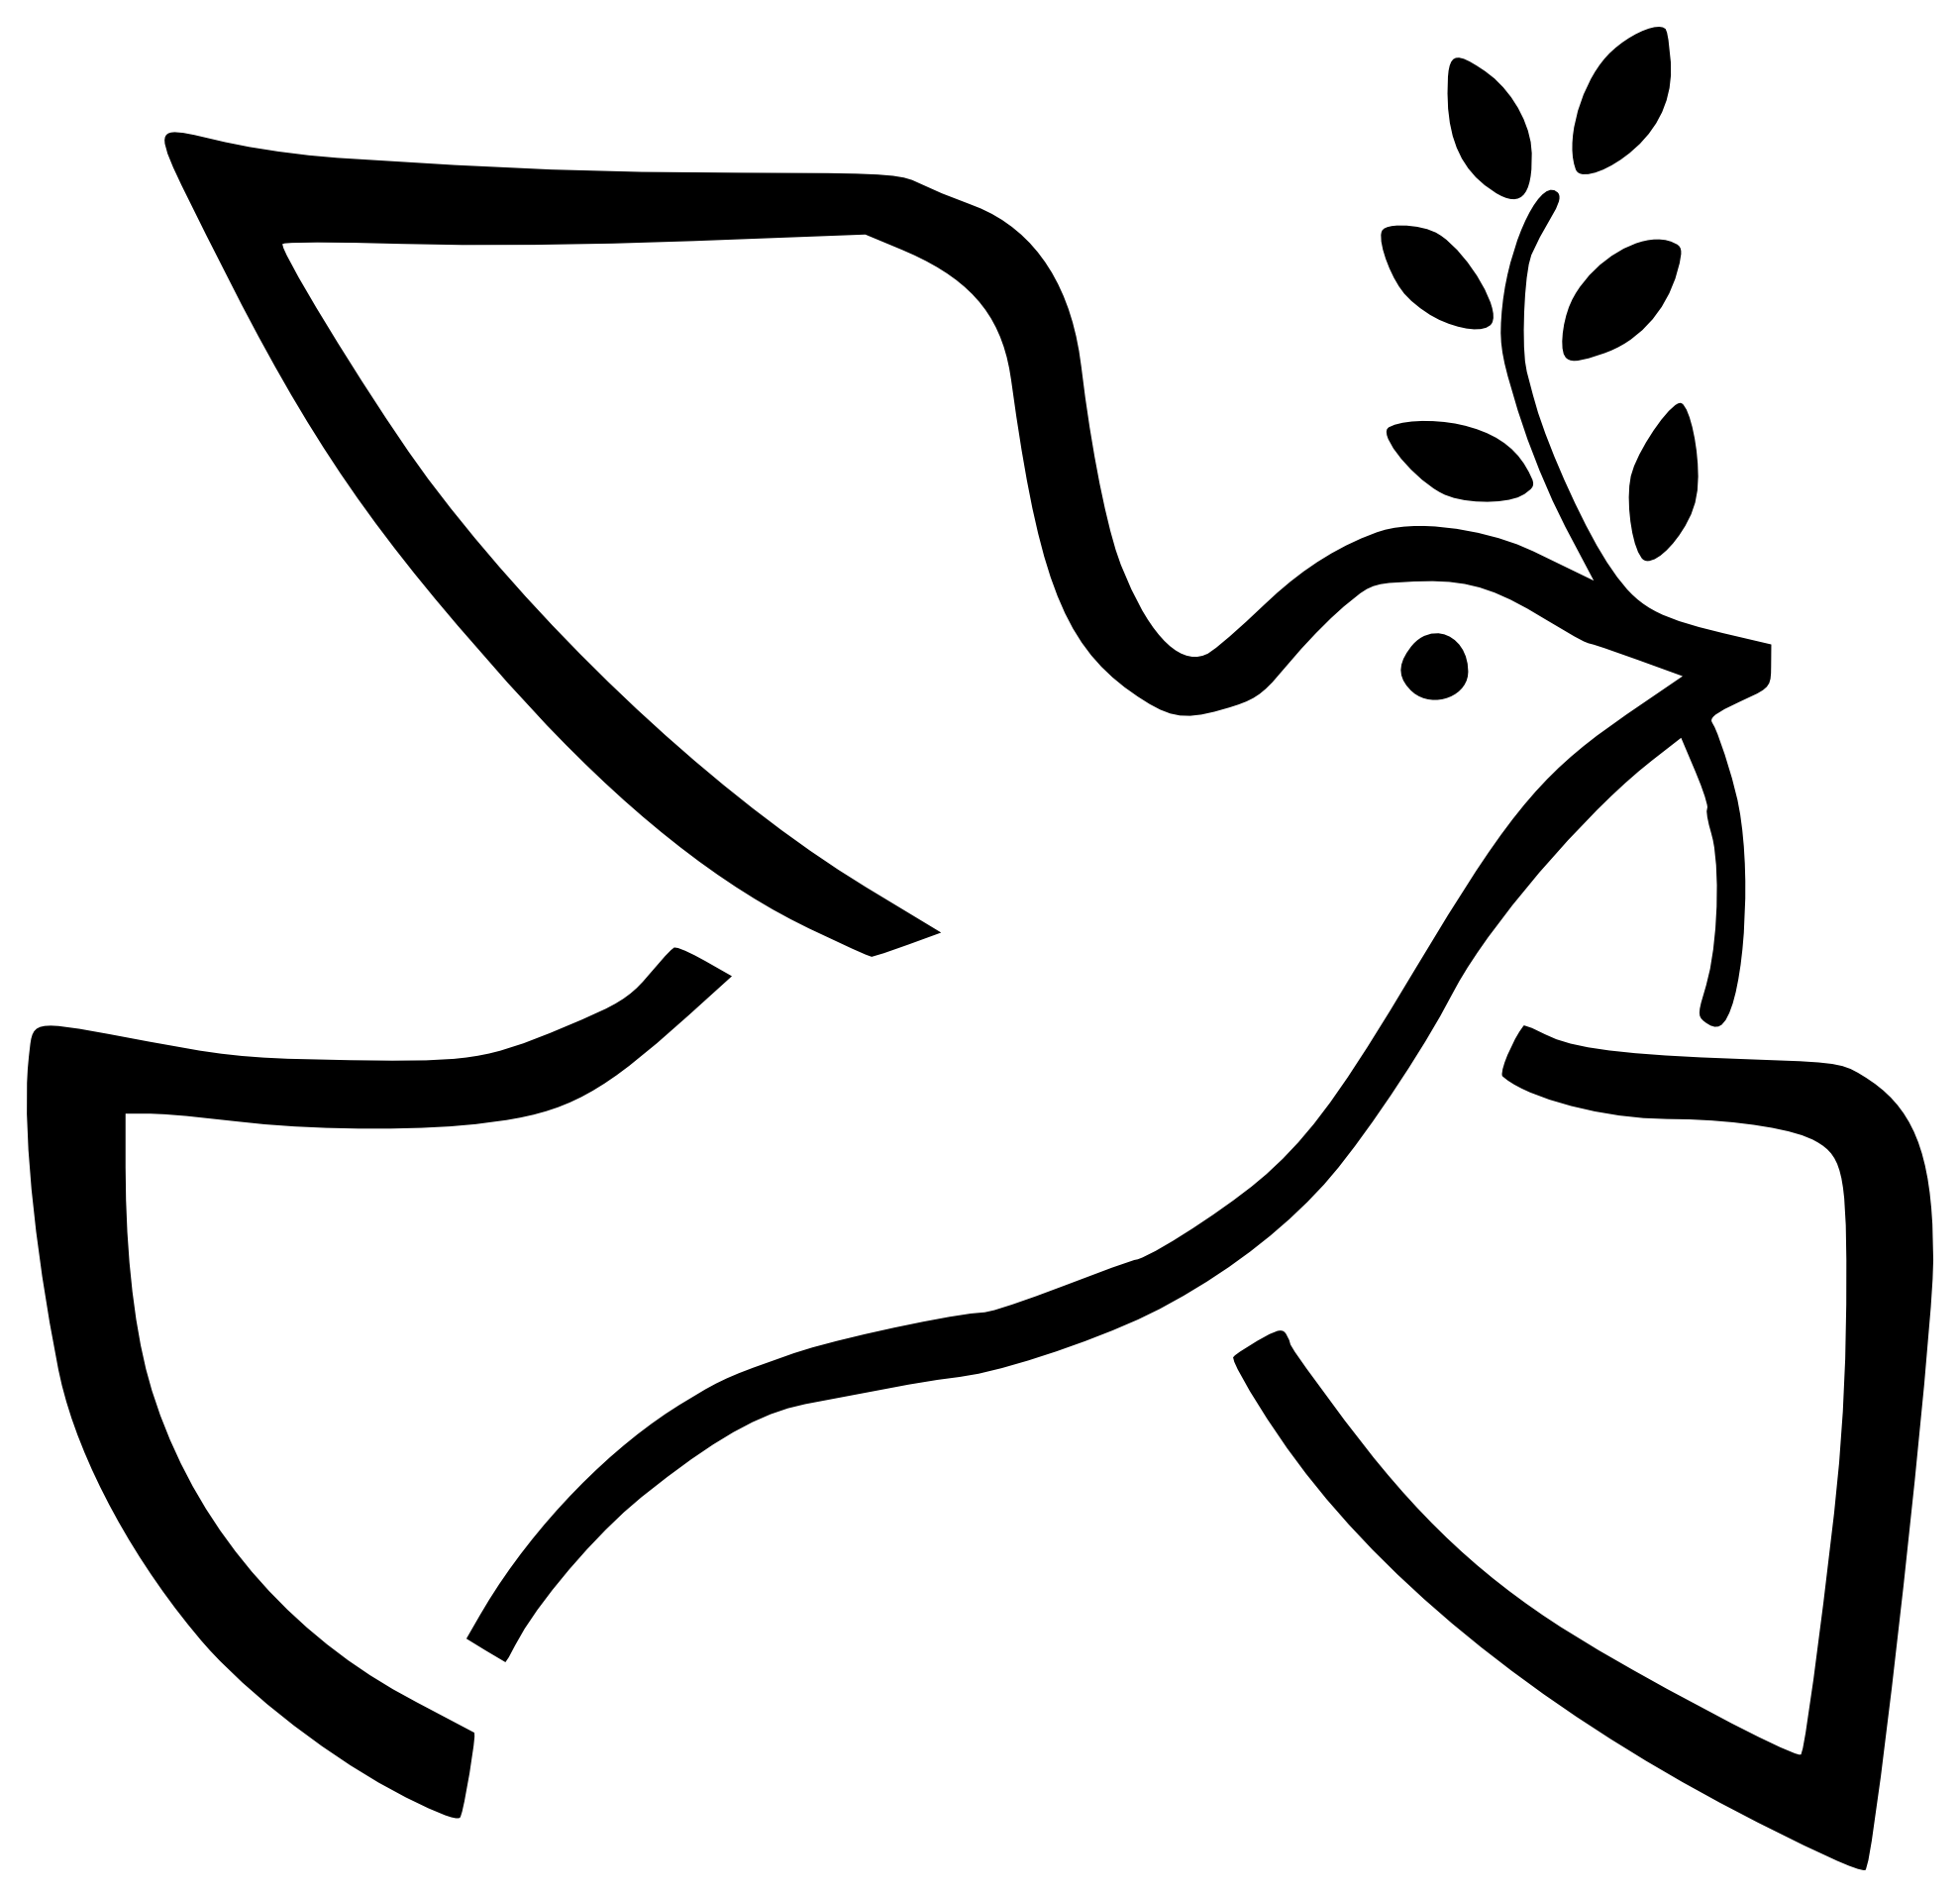 Doves and cross clipart svg free stock Dove black and white clipart - ClipartFest | ideas - peace dove ... svg free stock